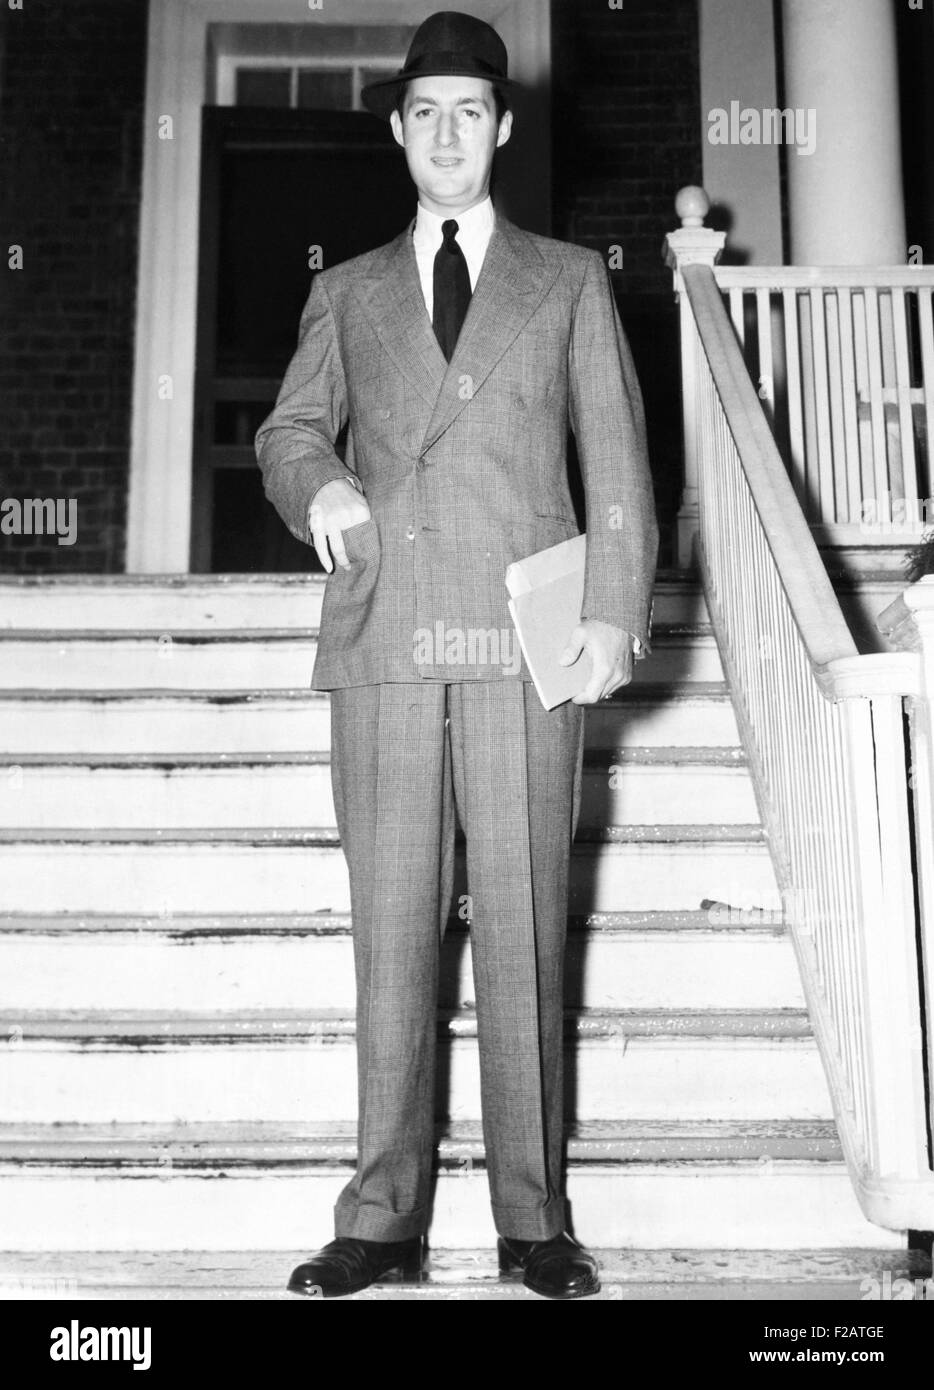 Paul Mellon while attending classes at St. John's College, Annapolis. Sept. 25, 1940. He graduated from Yale, - Stock Image